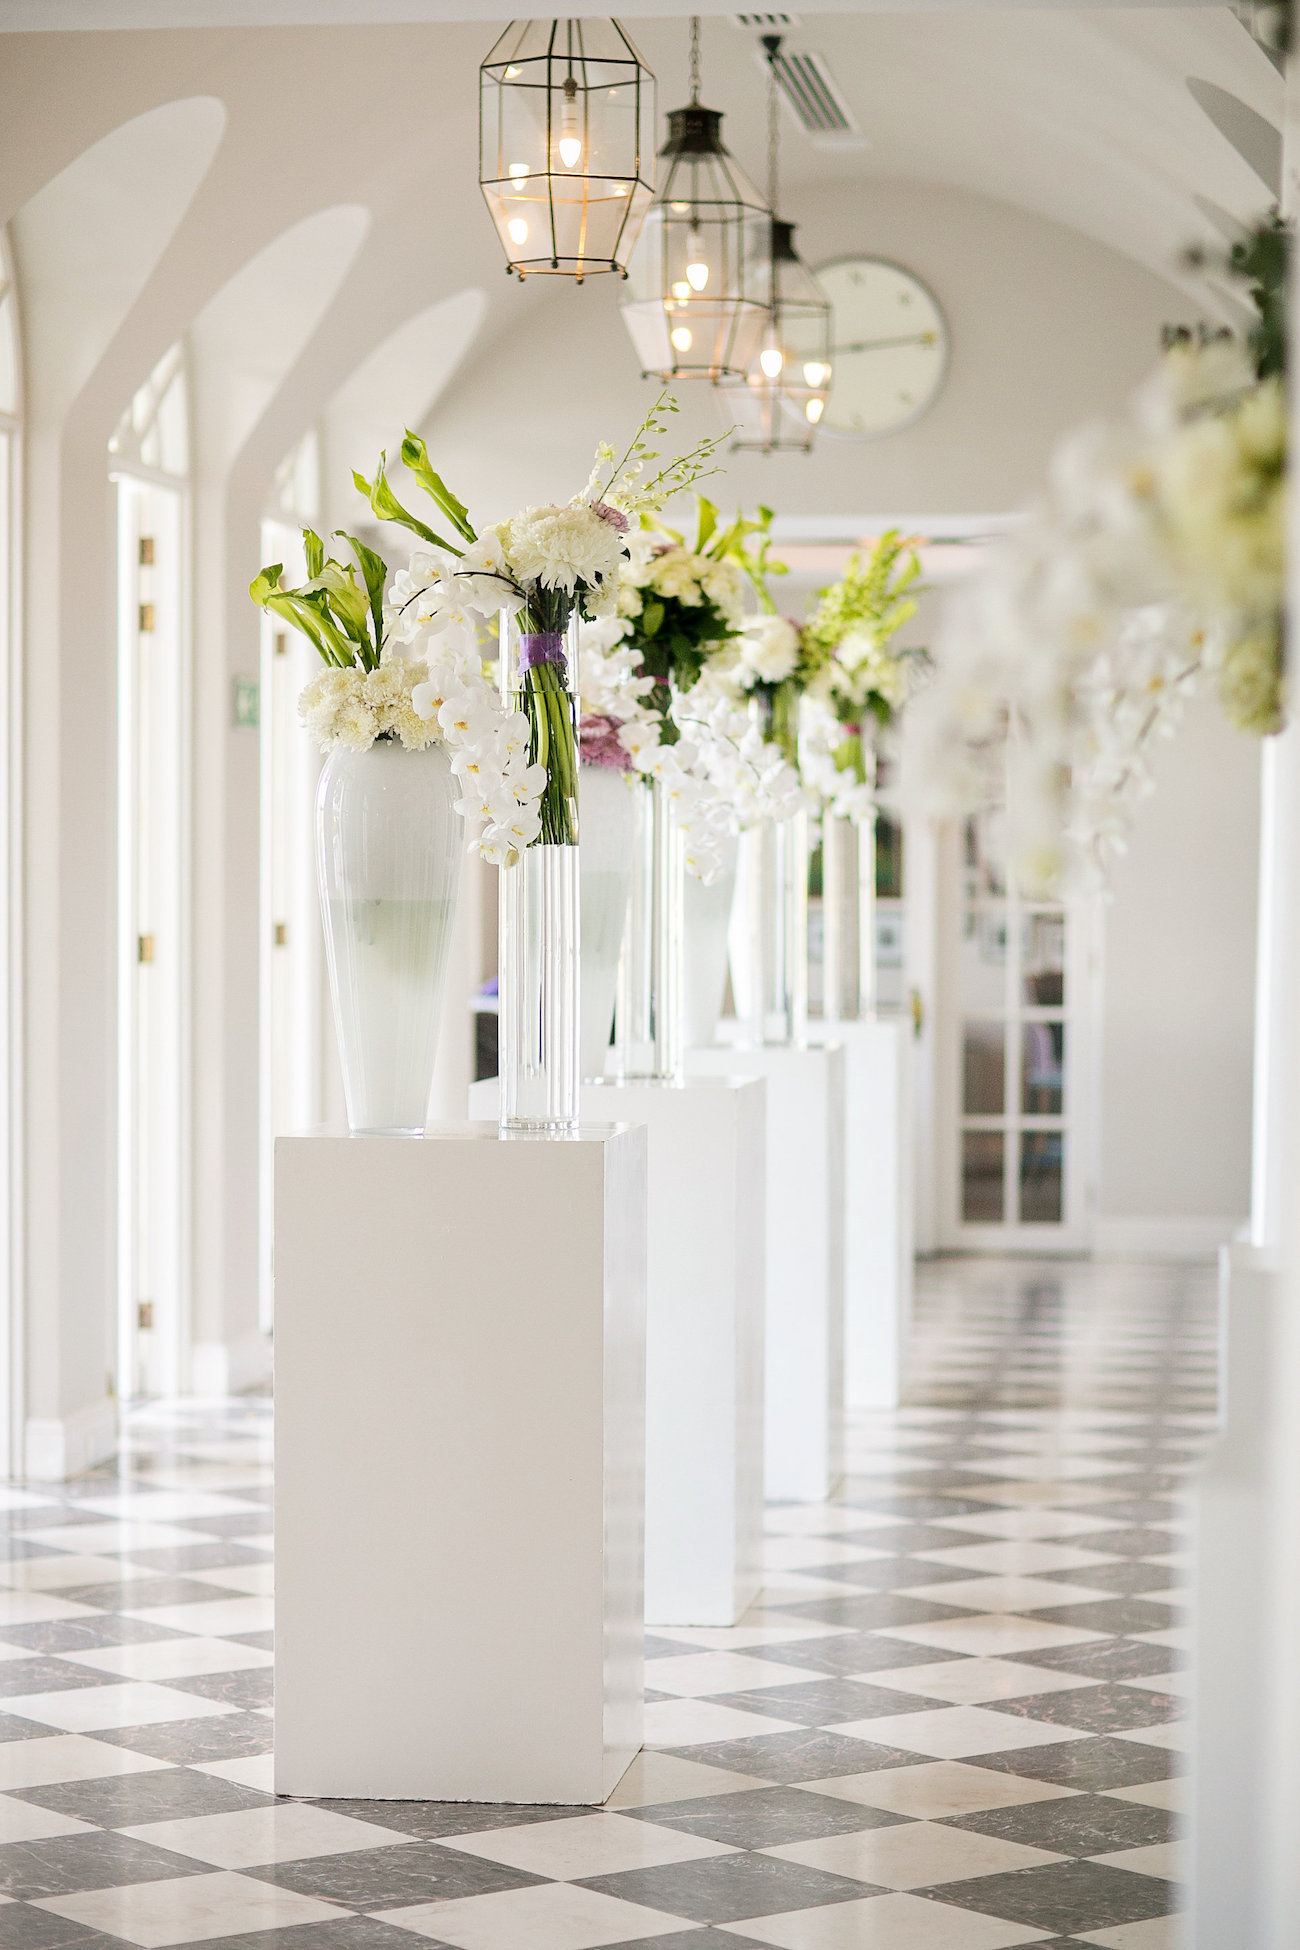 Luxurious Floral Wedding | Credit: Tyme Photography & Wedding Concepts